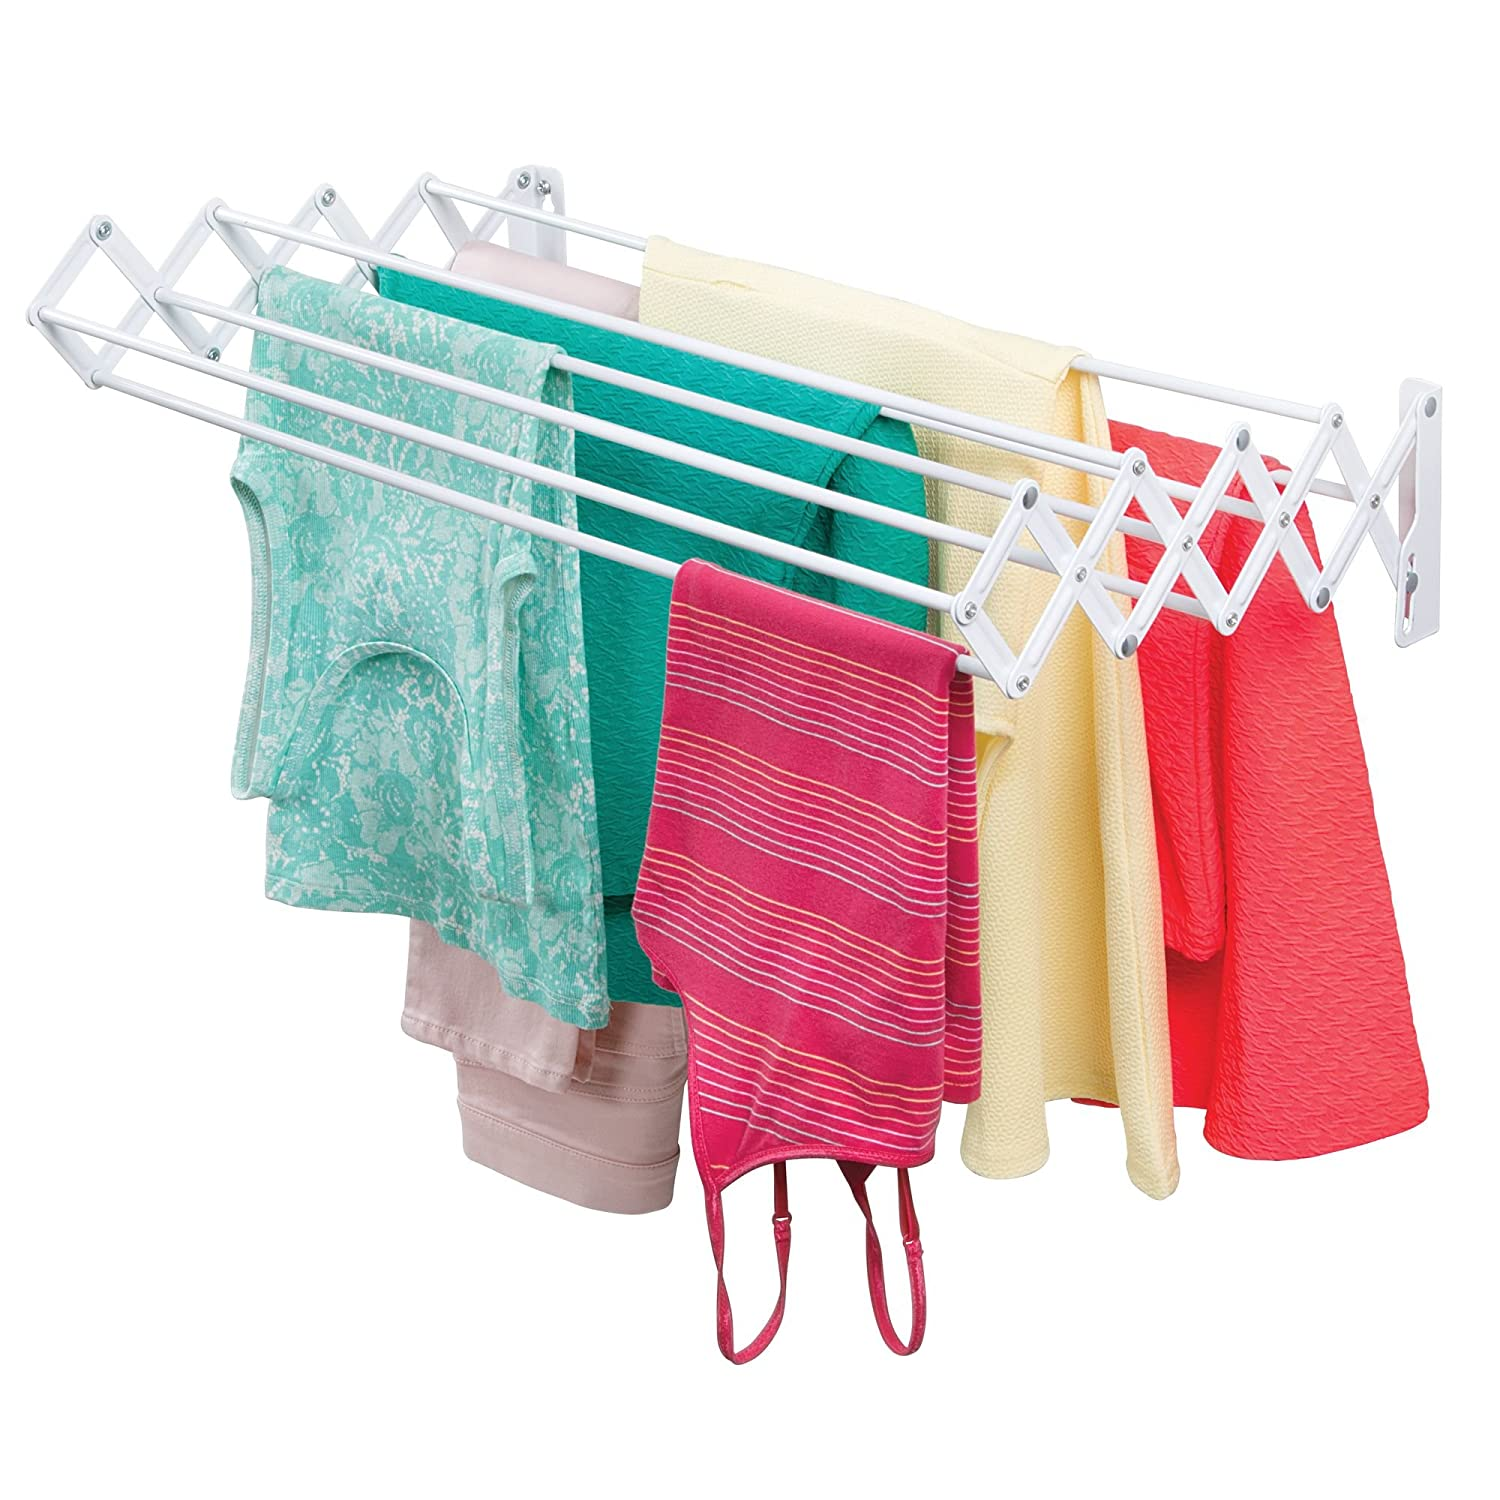 Mdesign Clothes Horse Clothes Drying Rack With 9 Rungs For Hanging